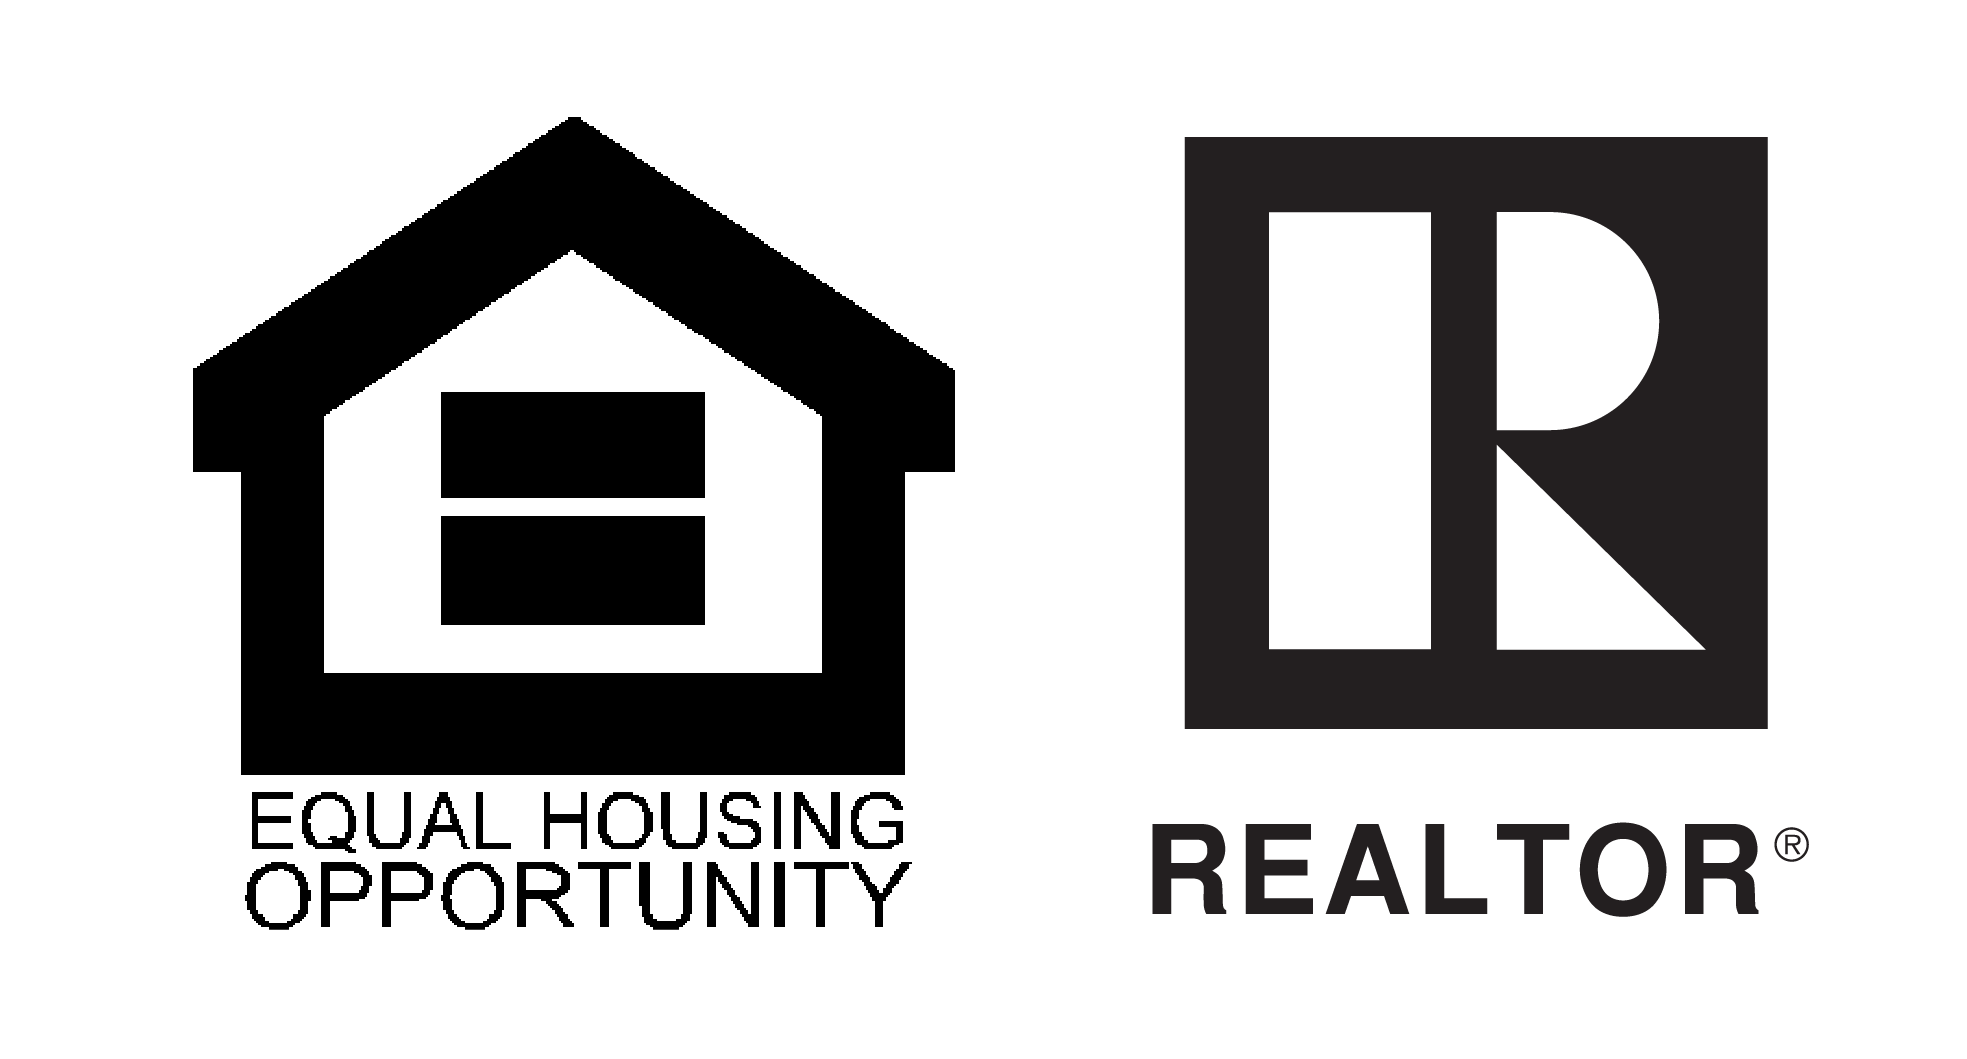 Equal Opportunity Housing Logo Png, png collections at sccpre.cat.